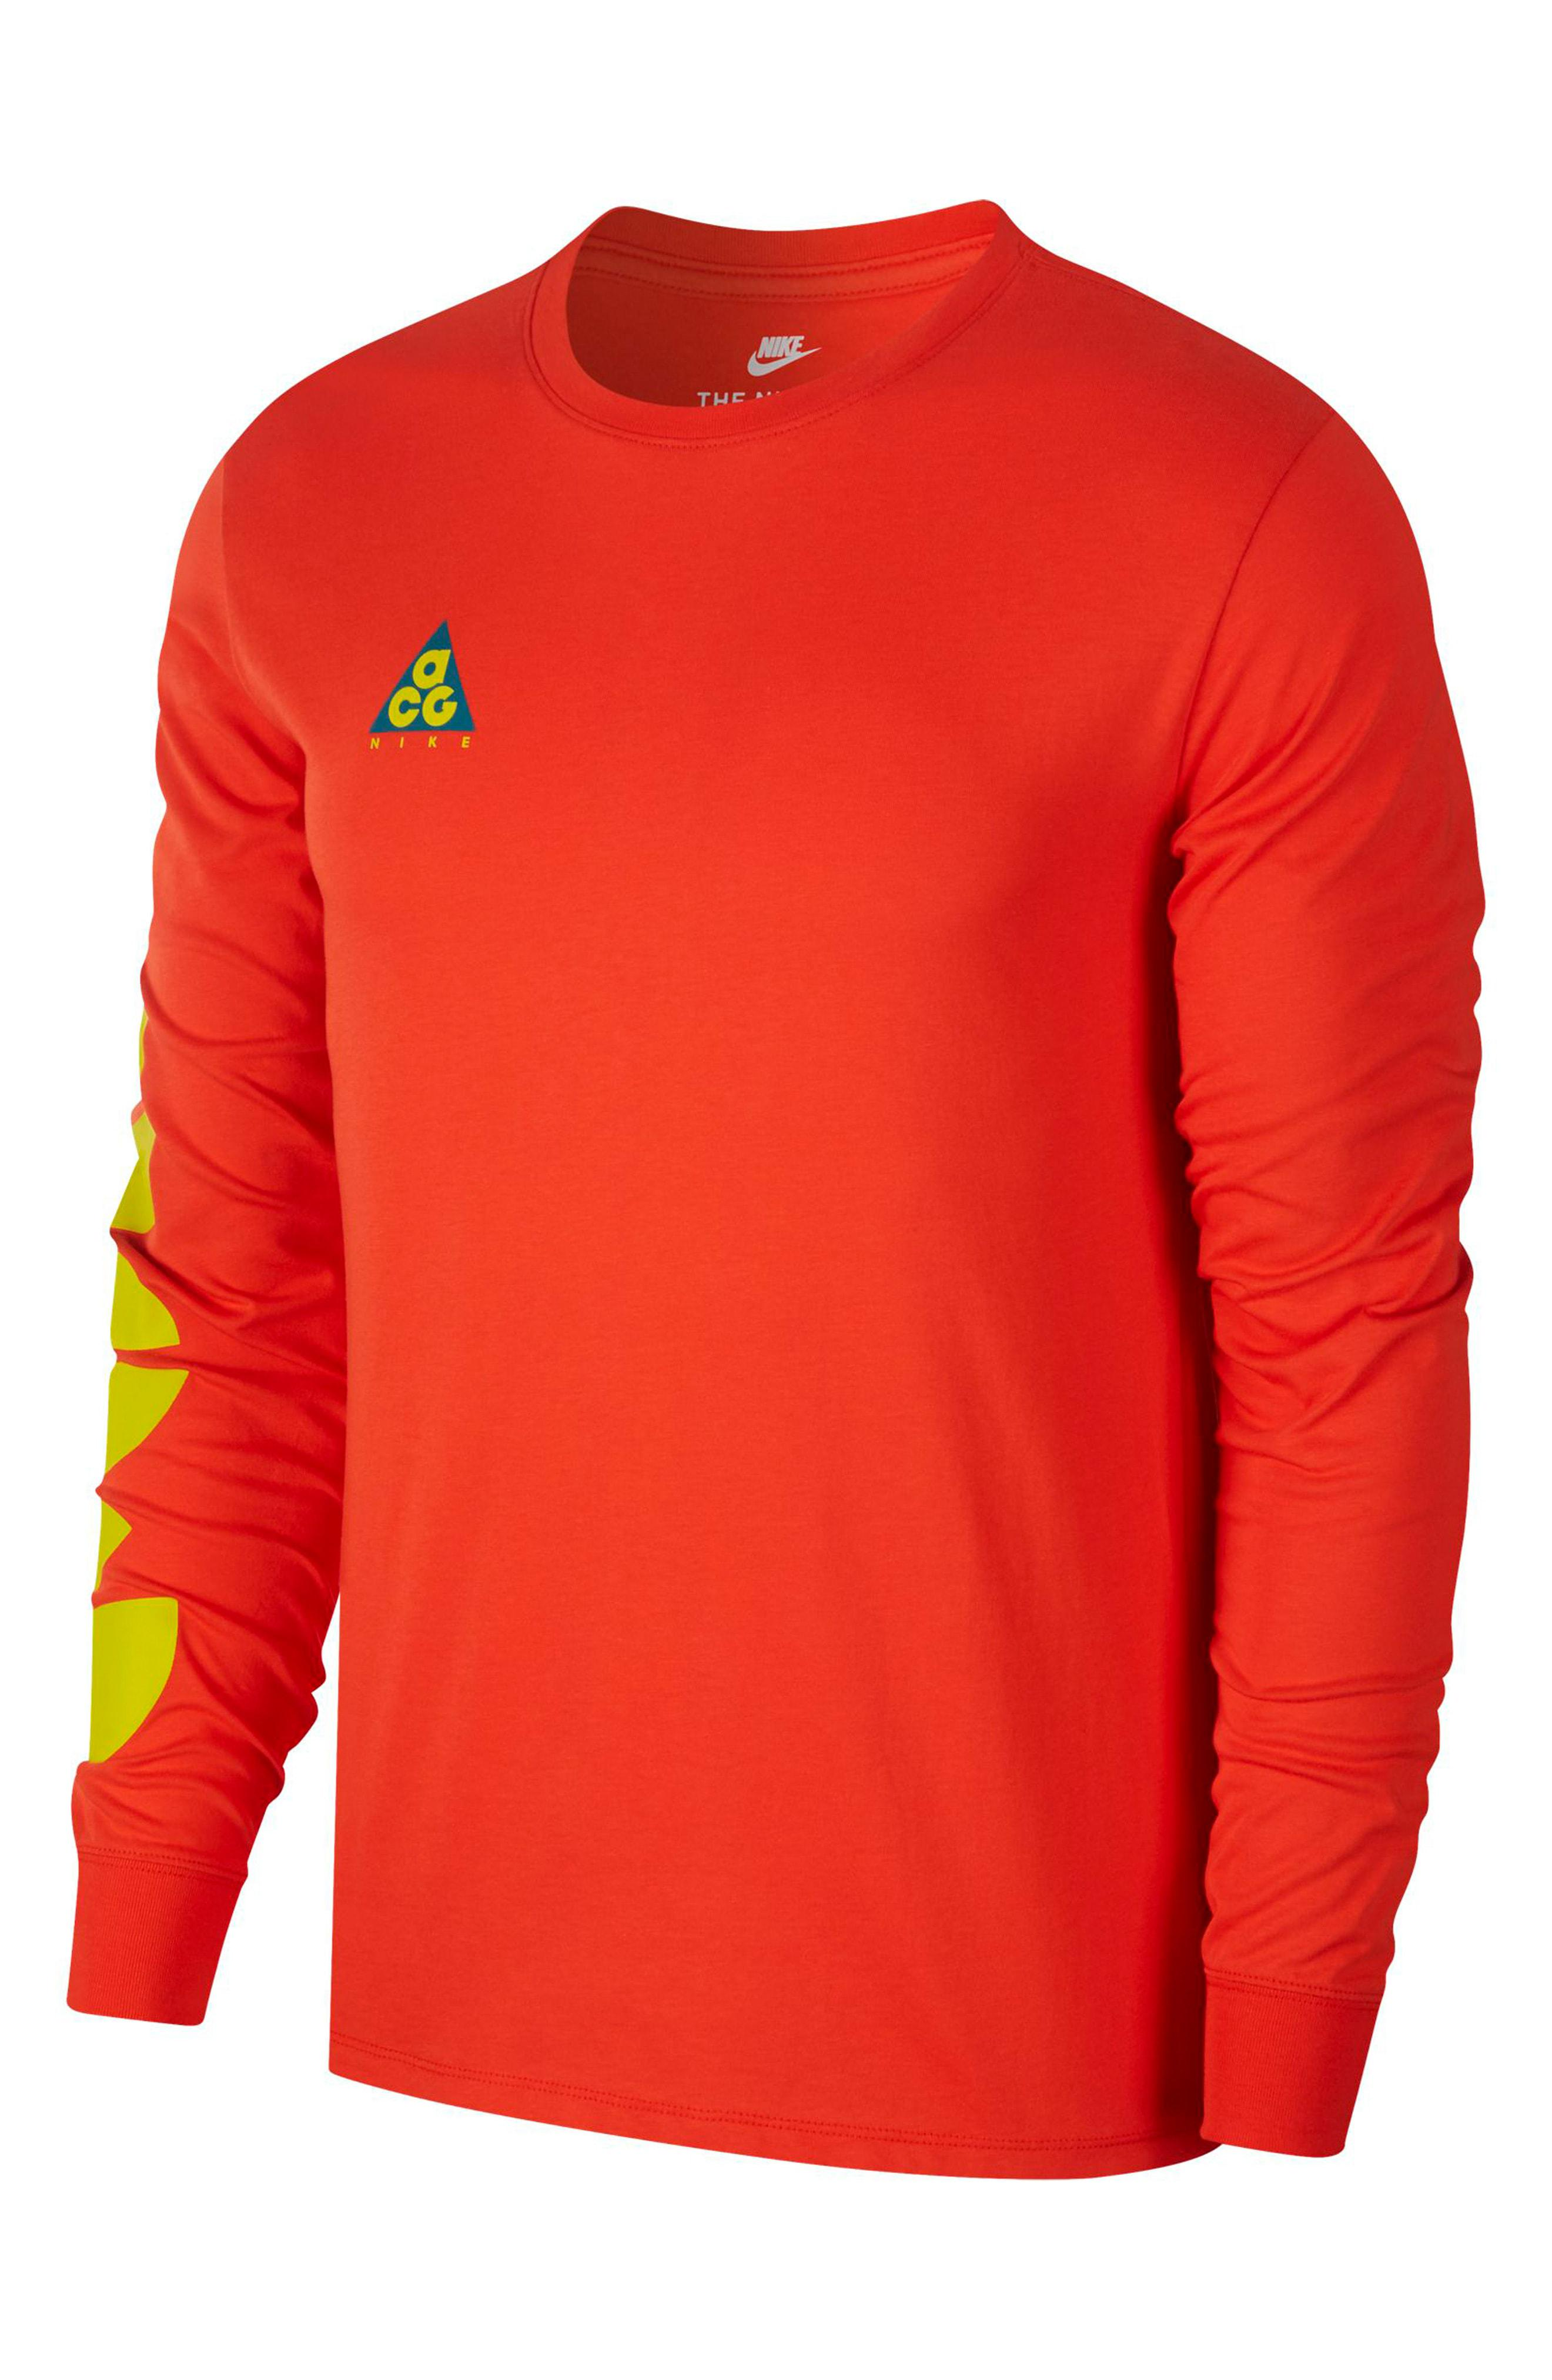 huge discount 717d3 88638 Nike - Red Nsw Acg Graphic T-shirt for Men - Lyst. View fullscreen